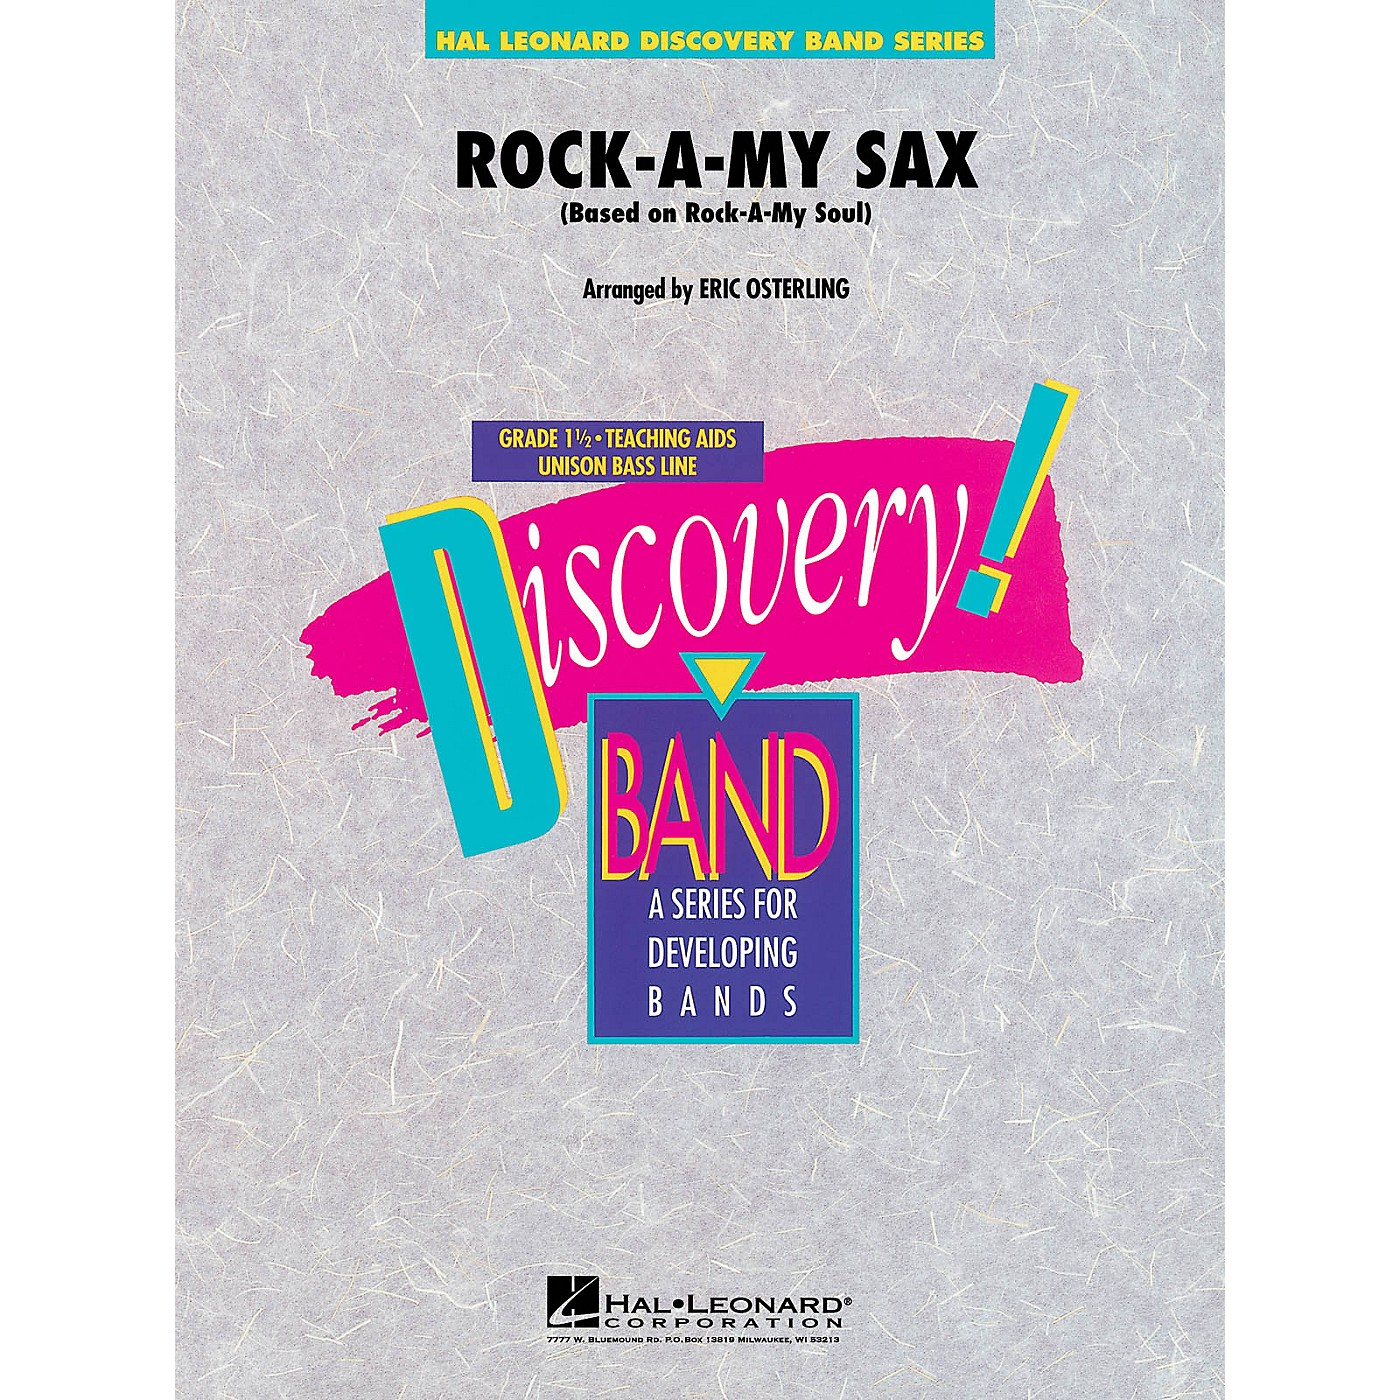 Hal Leonard Rock-a-My Sax (Saxophone Feature) Concert Band Level 1.5 Arranged by Eric Osterling thumbnail